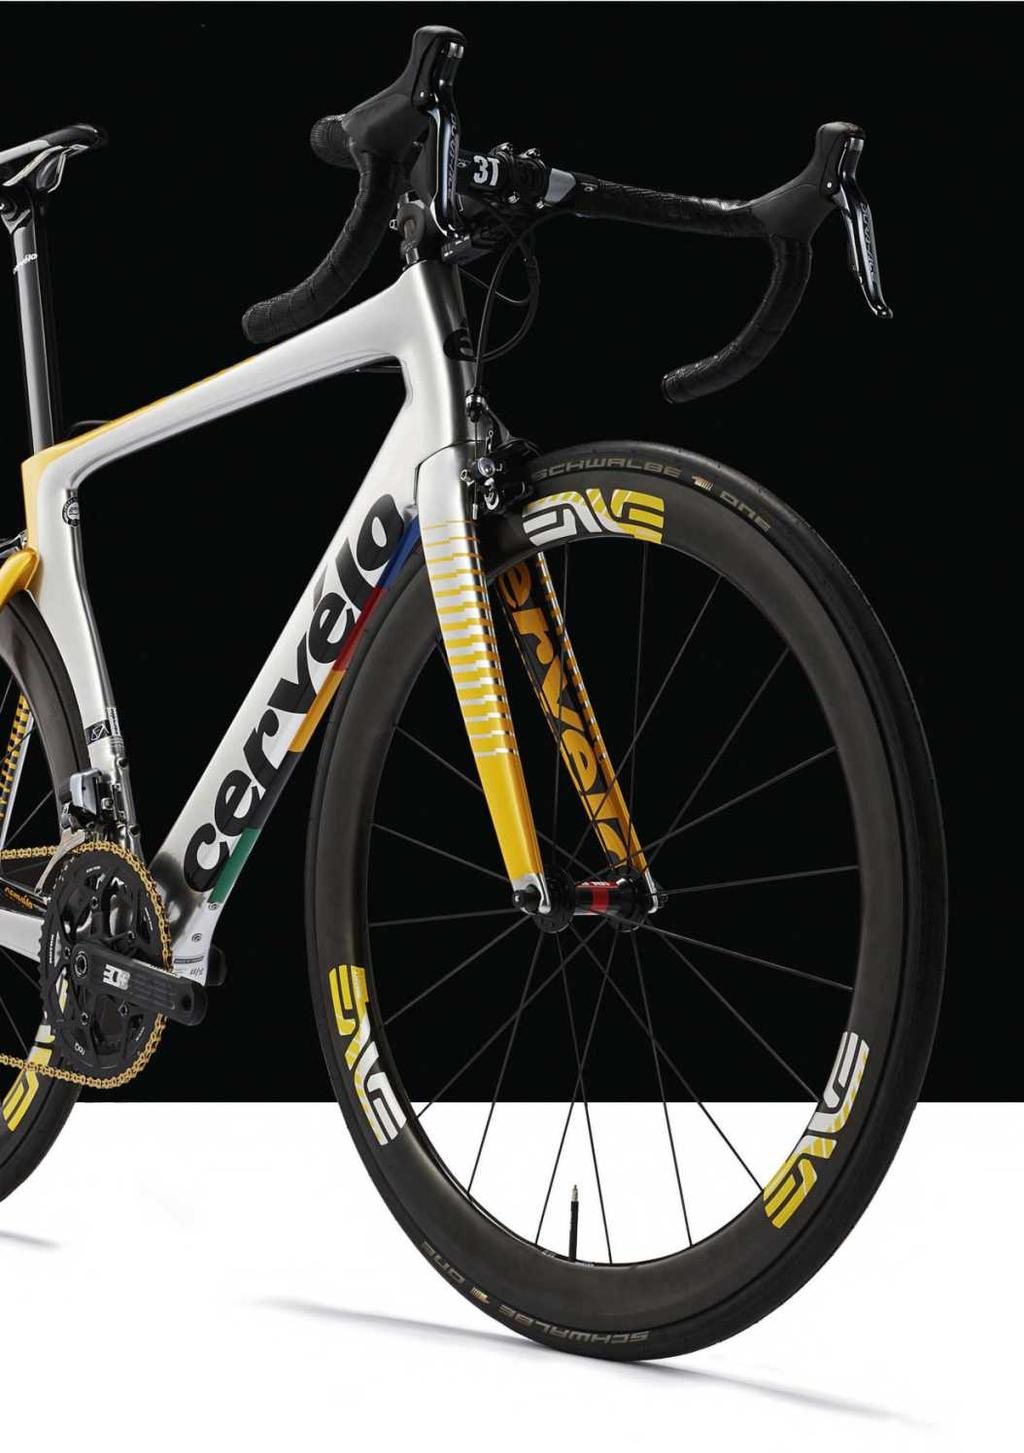 8591756a84 RIDE ALL WINTER YOUR NEXT BIKE! FREE ROAD TESTED PRO FOR A DAY ...